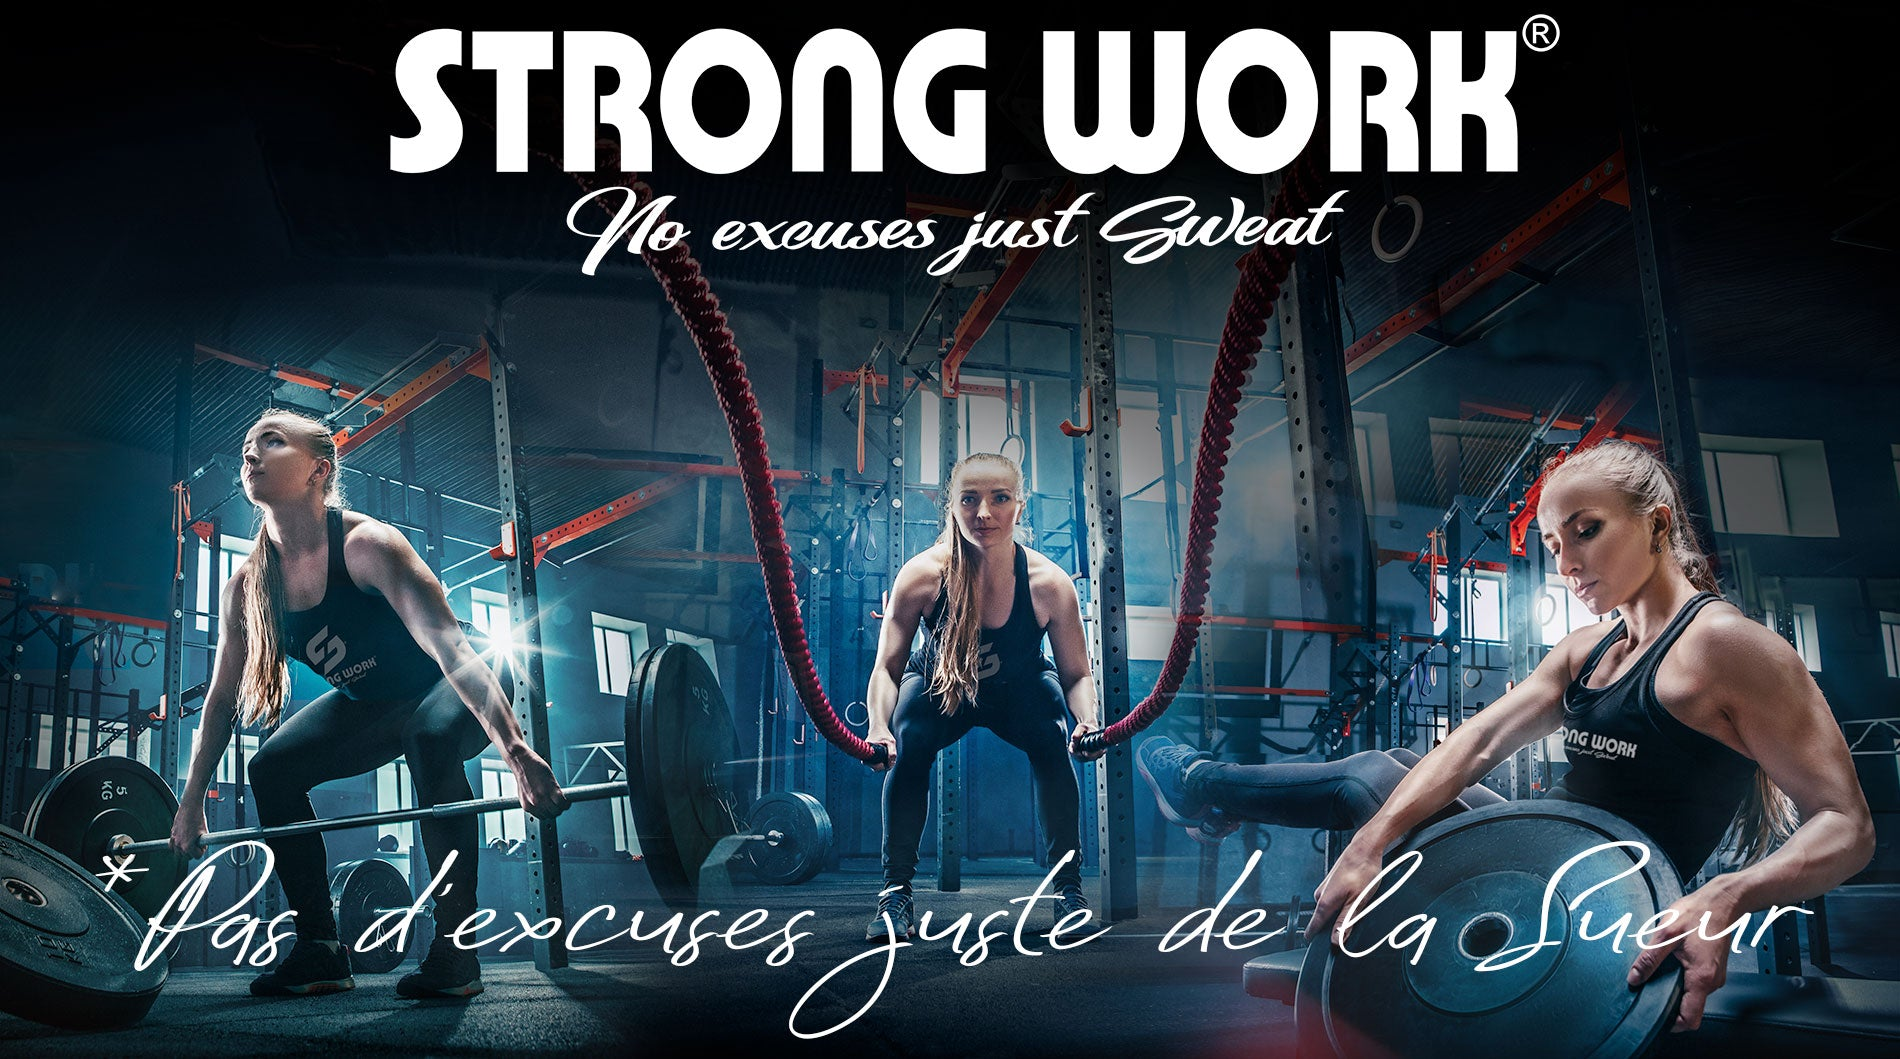 DEBARDEUR STRONG WORK ORIGINALS POUR FEMME